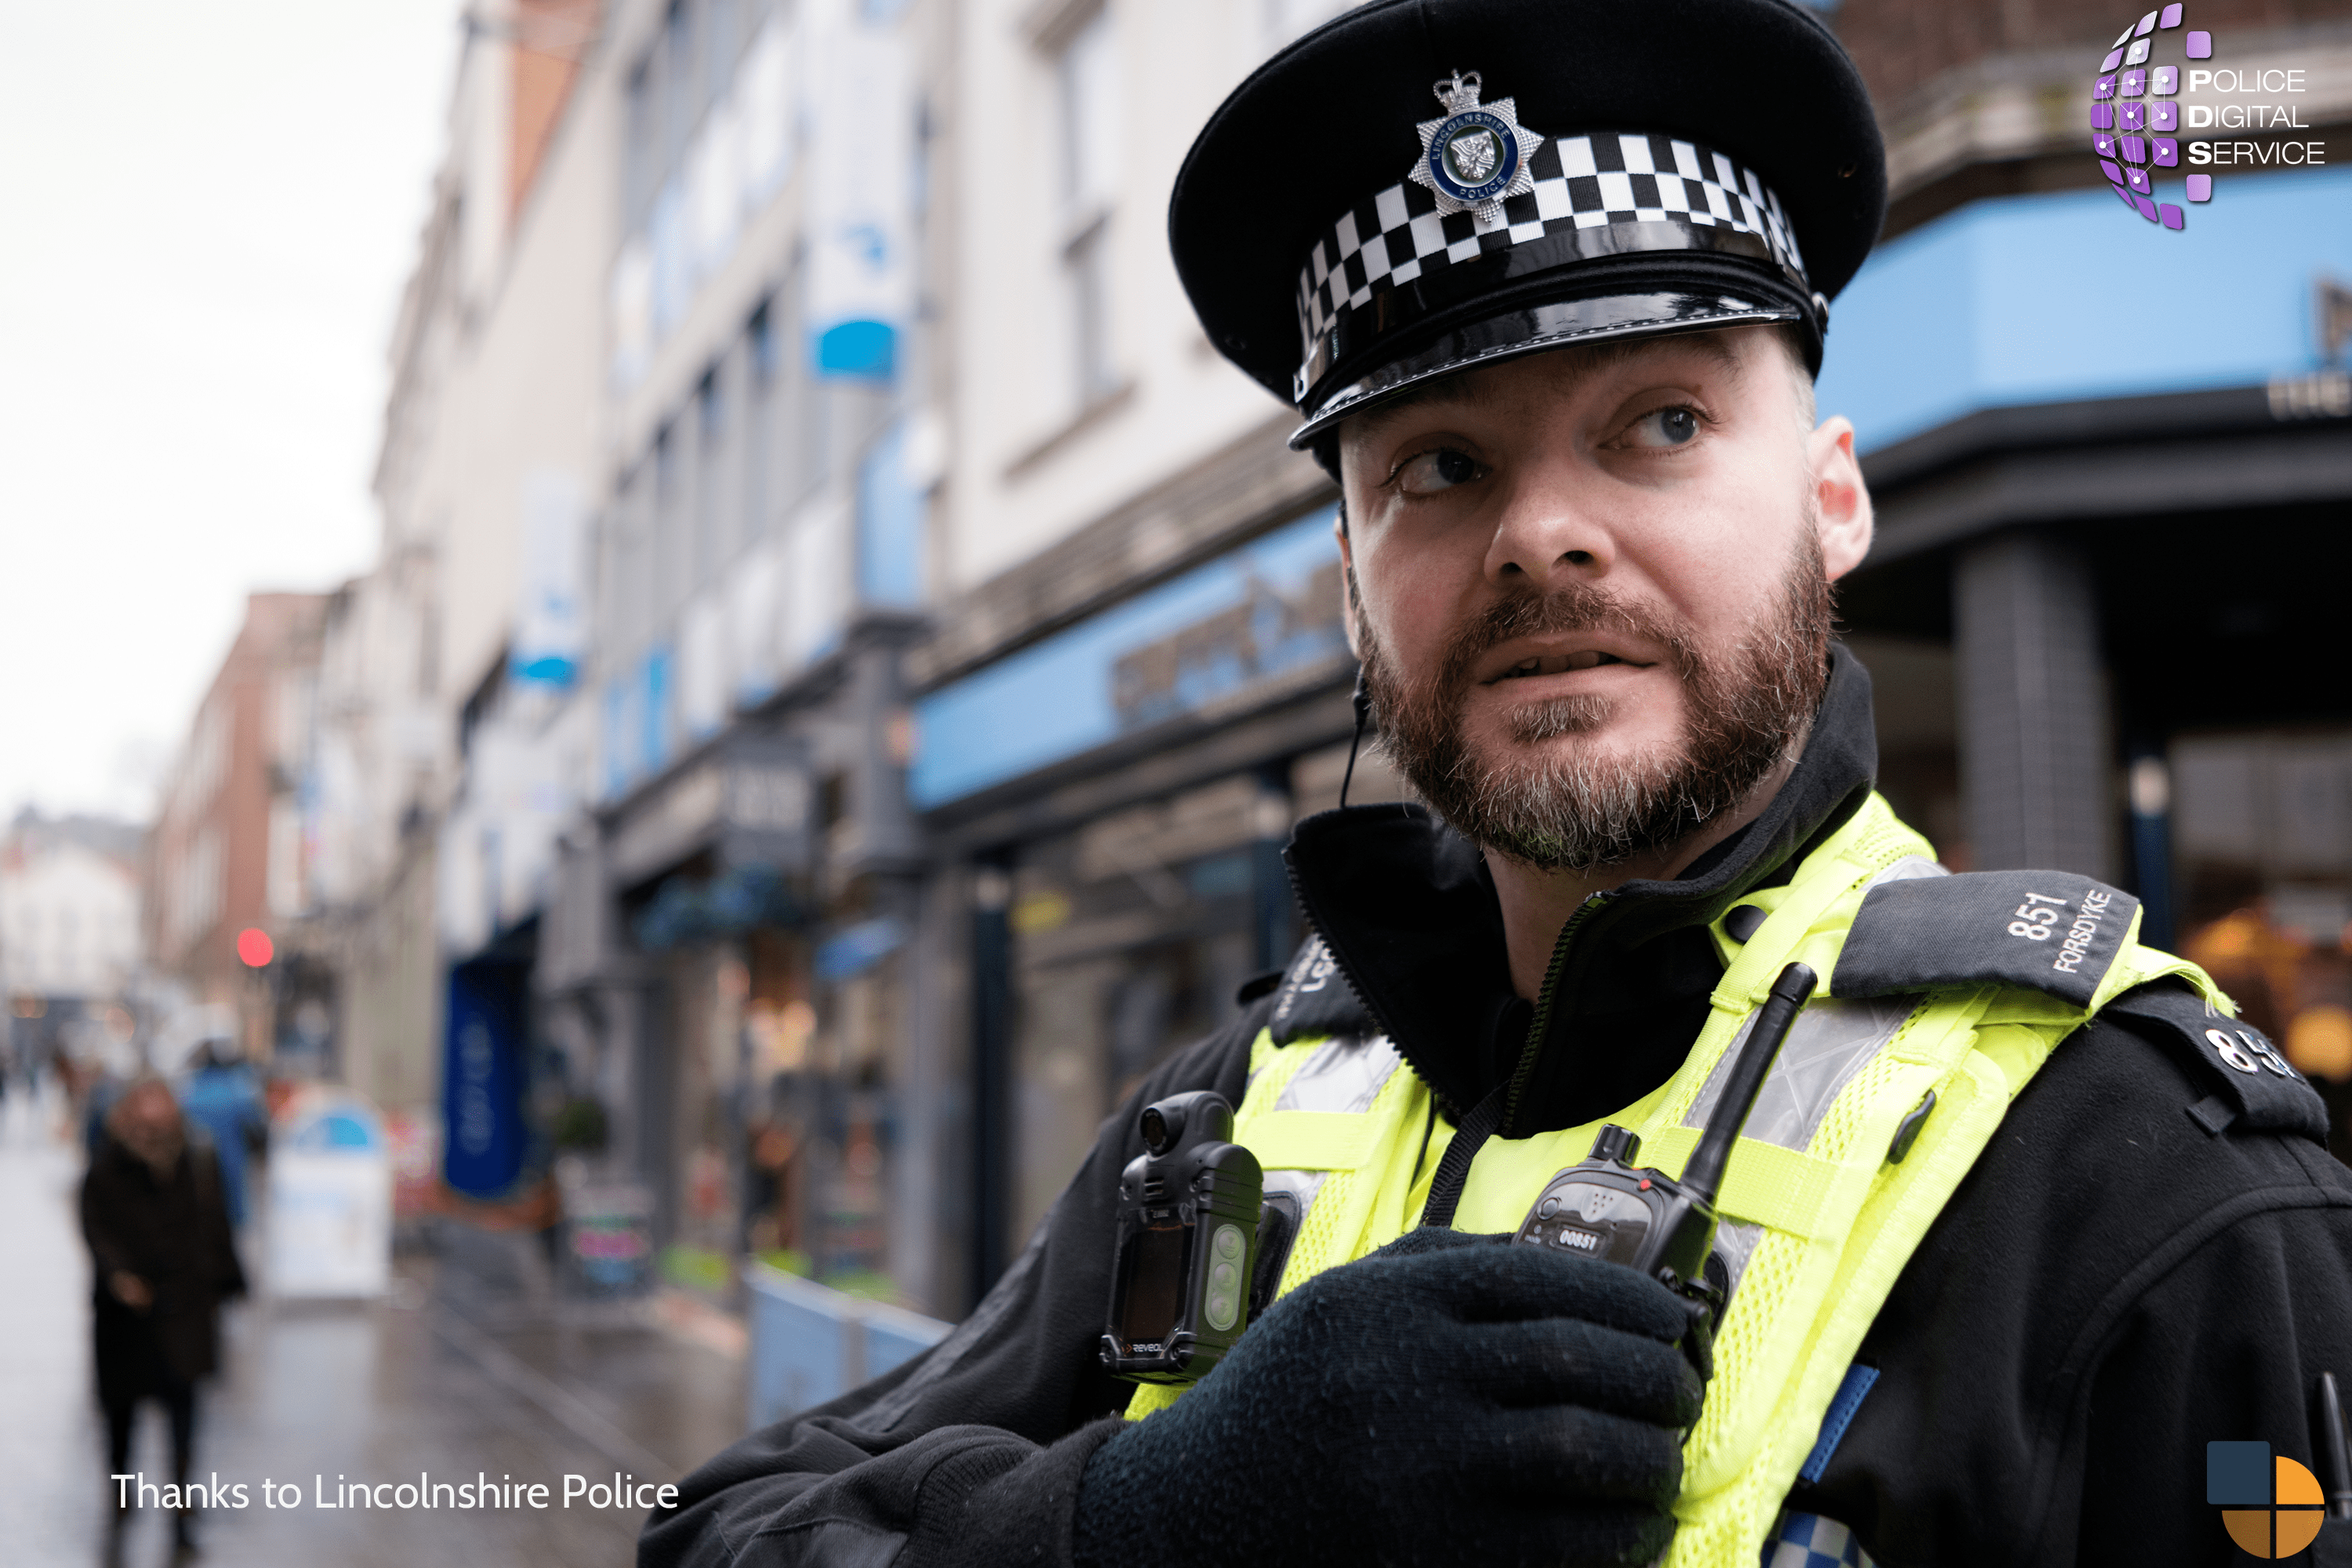 Stock Photo of a Linc's Police officer in uniform in a town centre